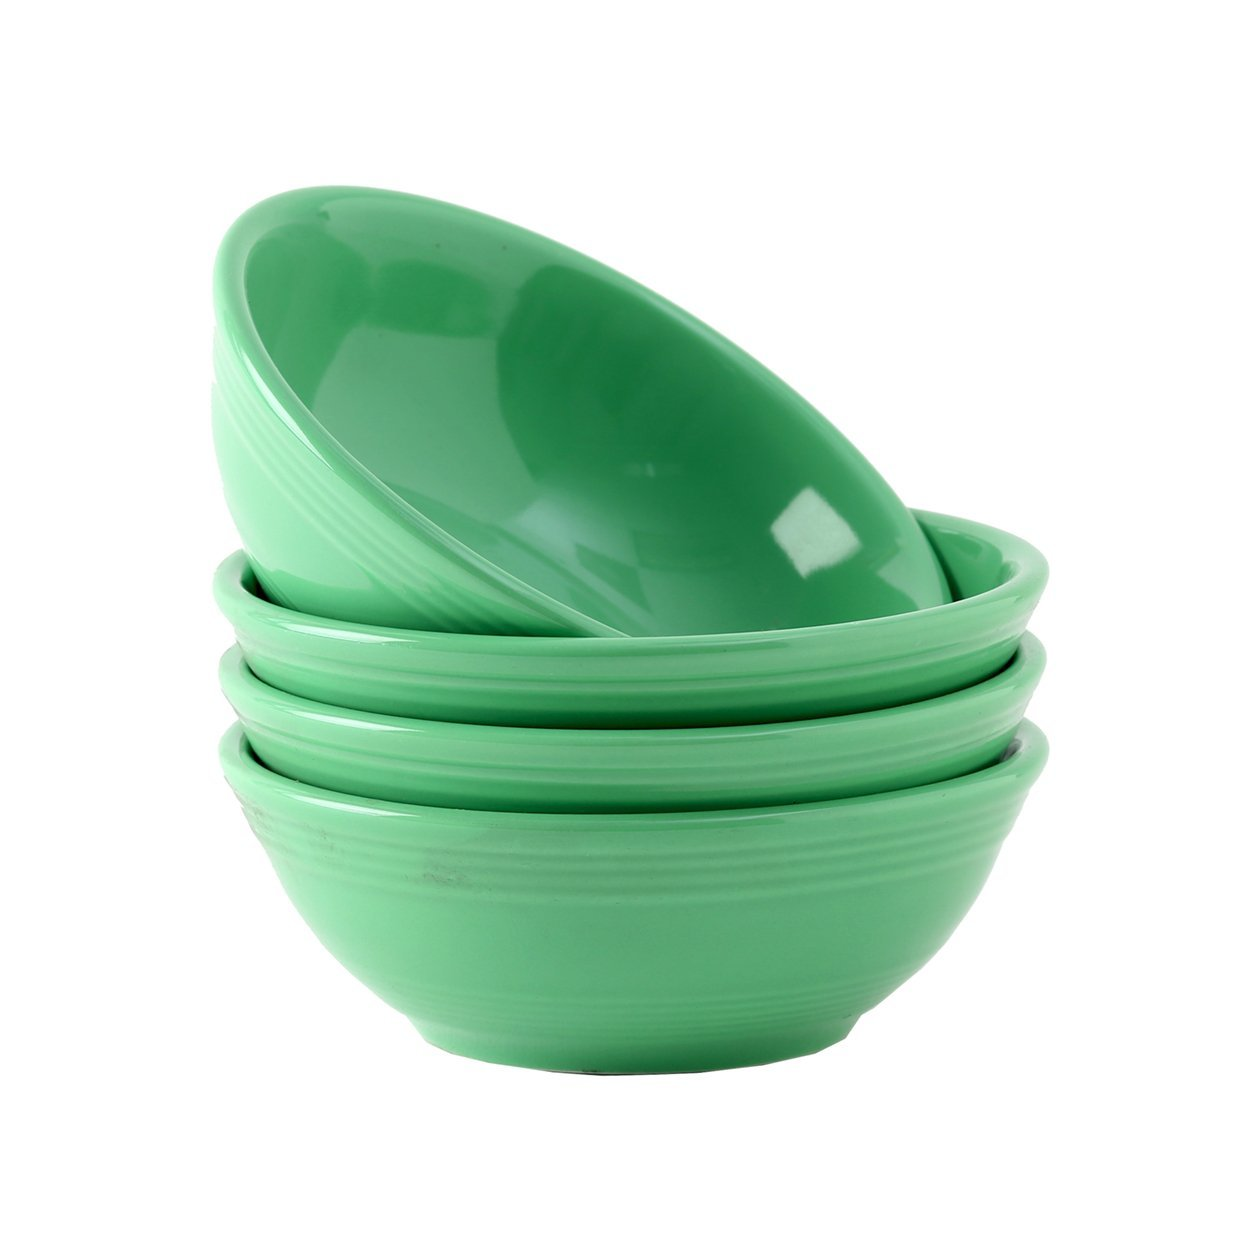 Tuxton Home Concentrix Bowl (Set of 4), 13 oz, Cilantro Green; Heavy Duty; Chip Resistant; Lead and Cadmium Free; Freezer to Oven Safe up to 500F